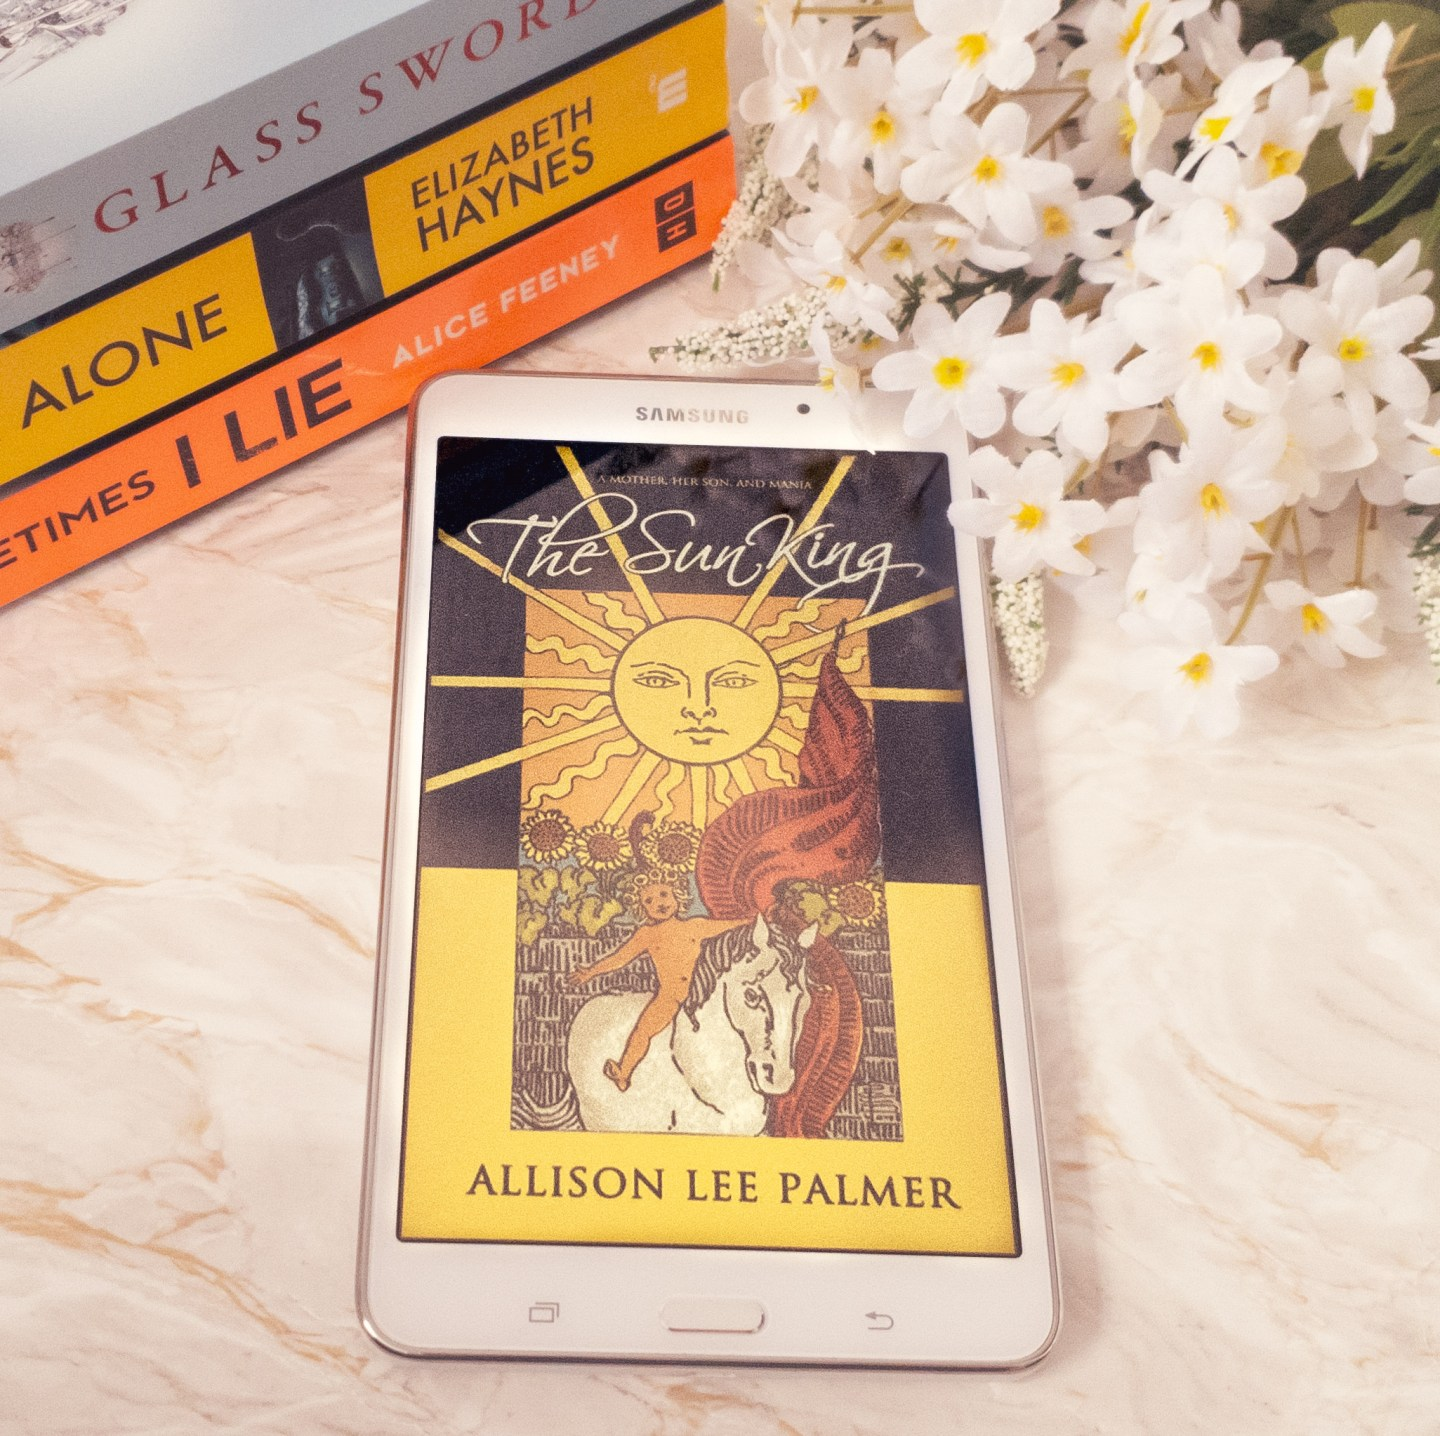 The Sun King by Allison Lee Palmer (Review)